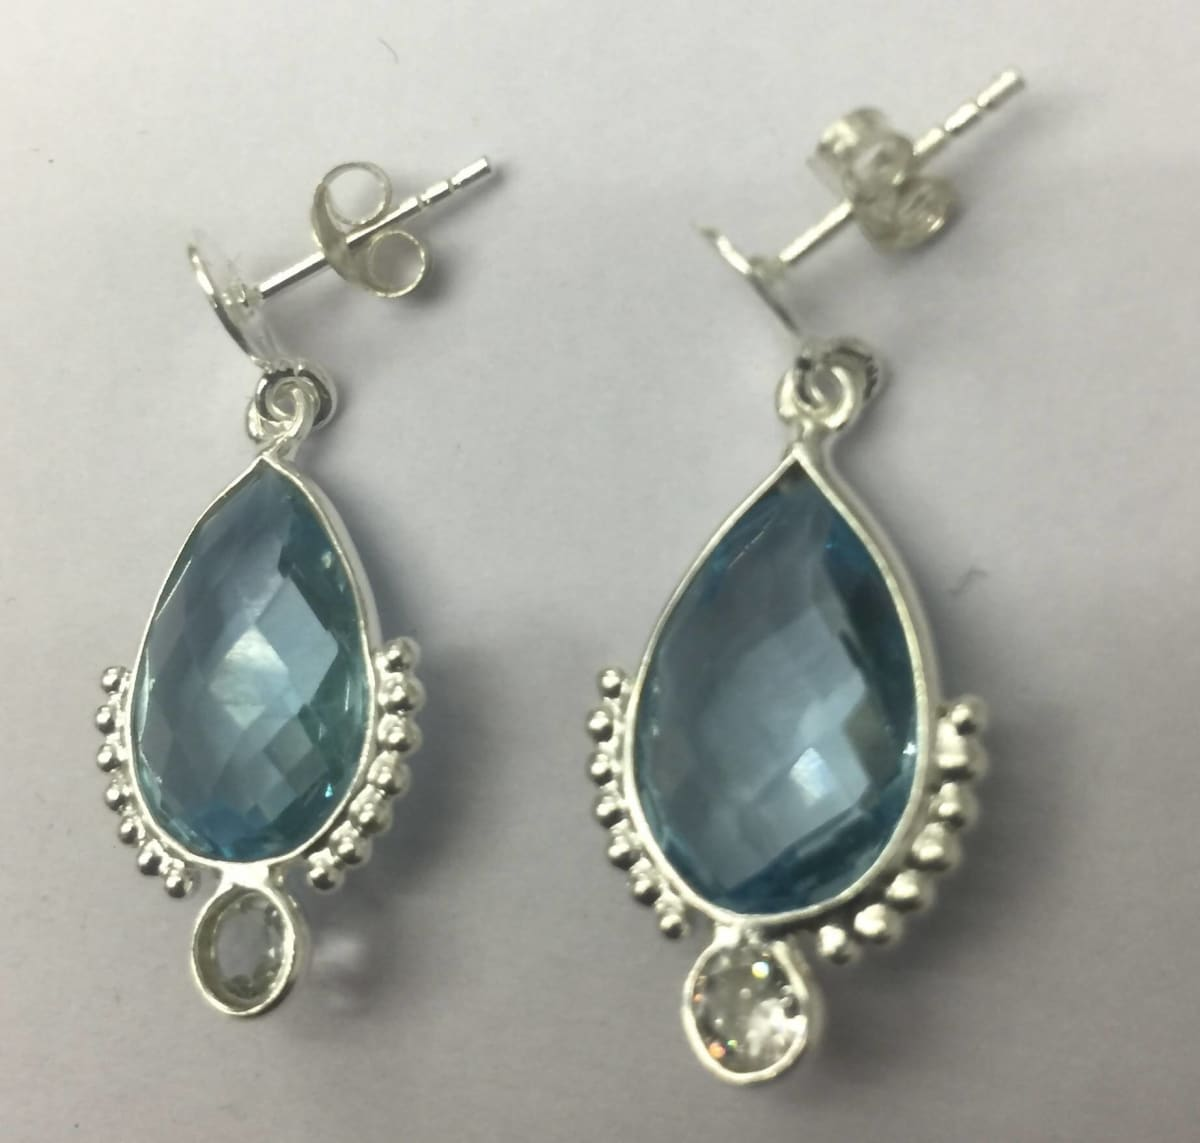 Earrings Blue Topaz - by TJ GEMS